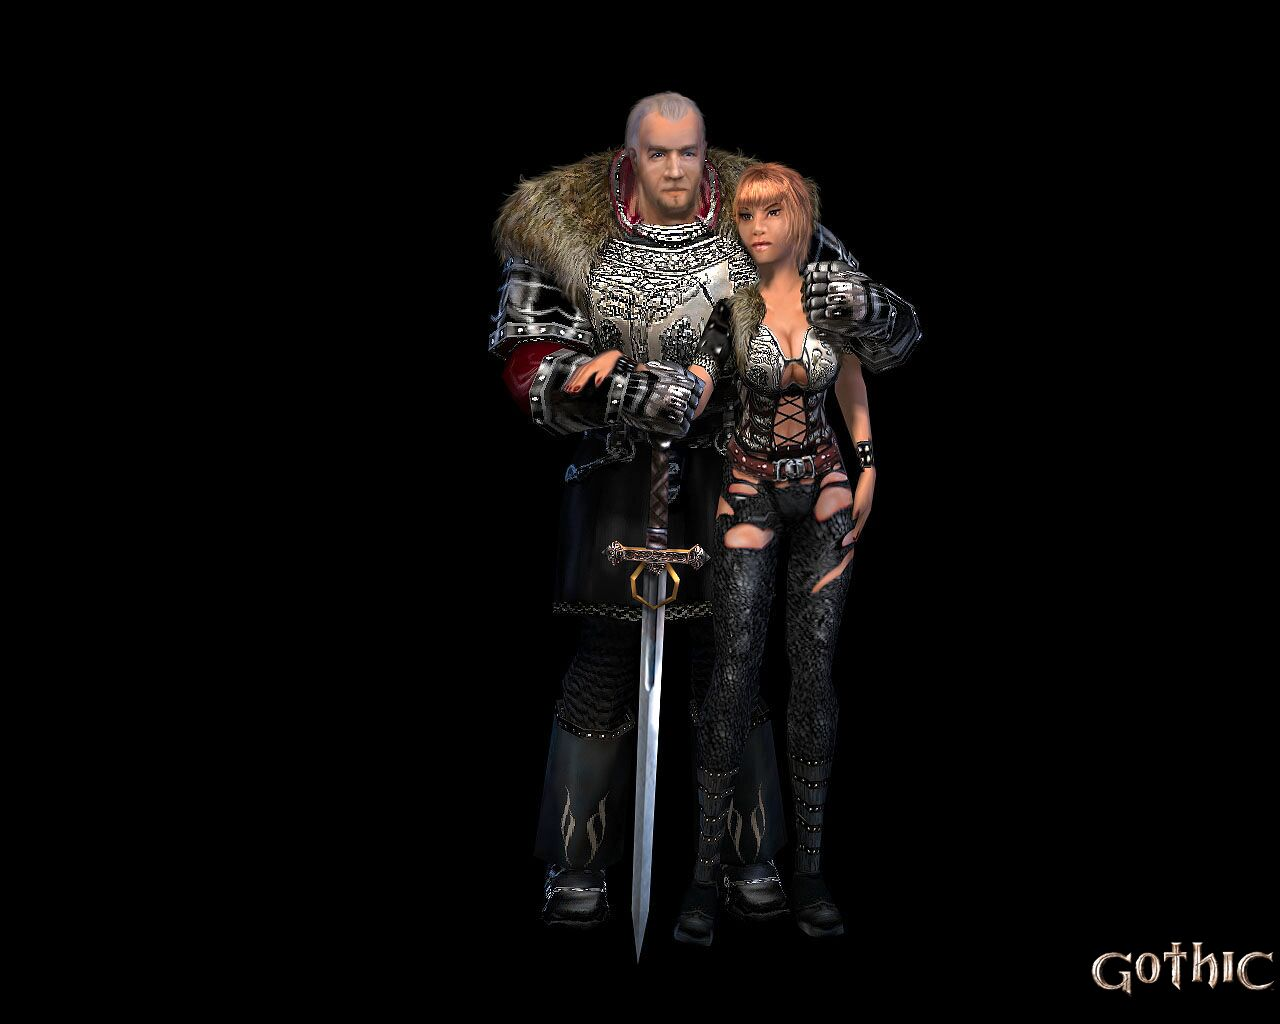 Wallpapers Gothic Games